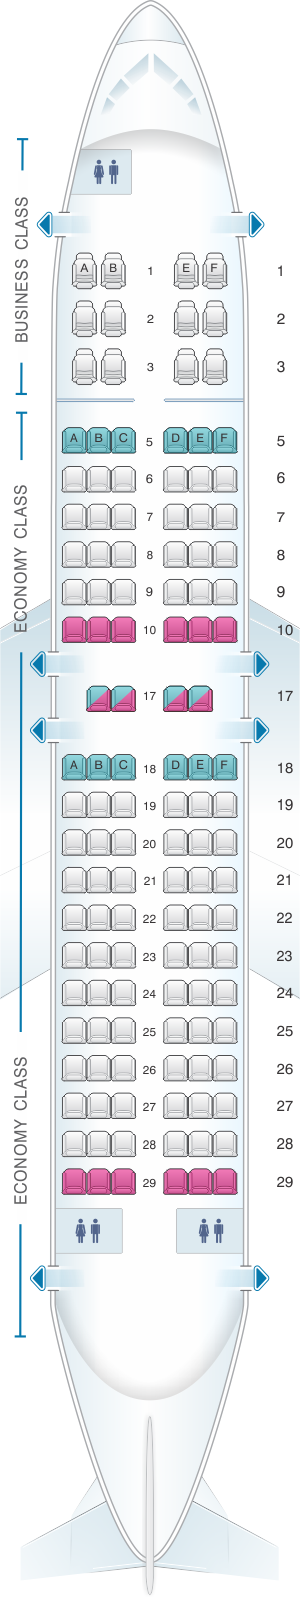 Seat map for Copa Airlines Boeing B737 700